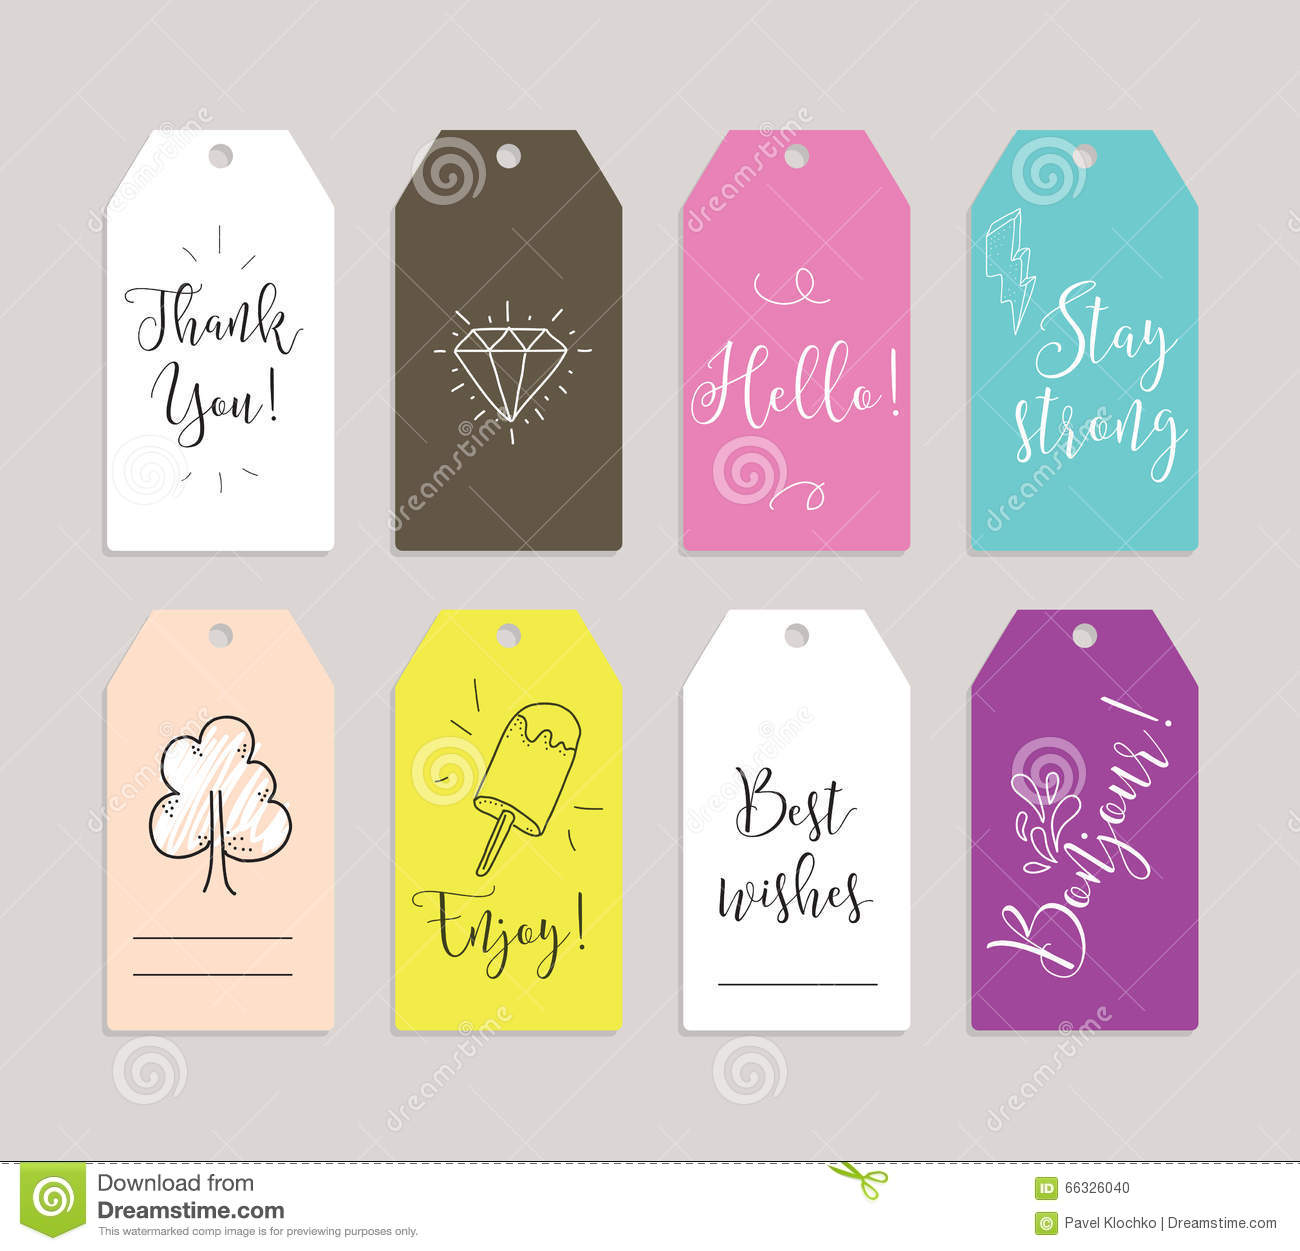 Set of labels, stickers or tags. Cards for journaling. Inspirational quotes. Usable as invitations, greetings, planner